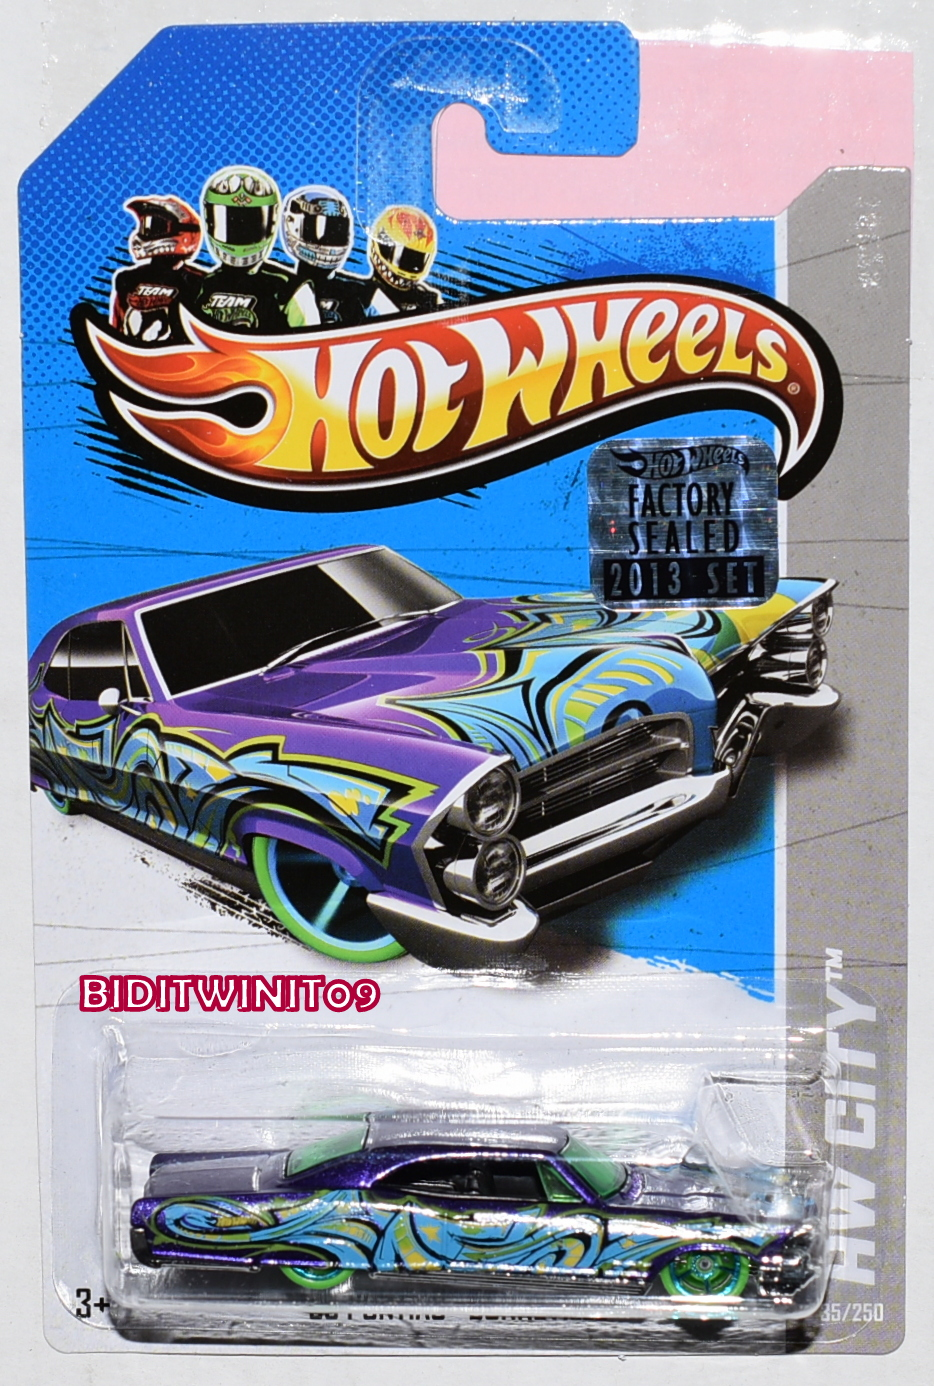 HOT WHEELS 2013 HW CITY '65 PONTIAC BONNEVILLE FACTORY SEALED